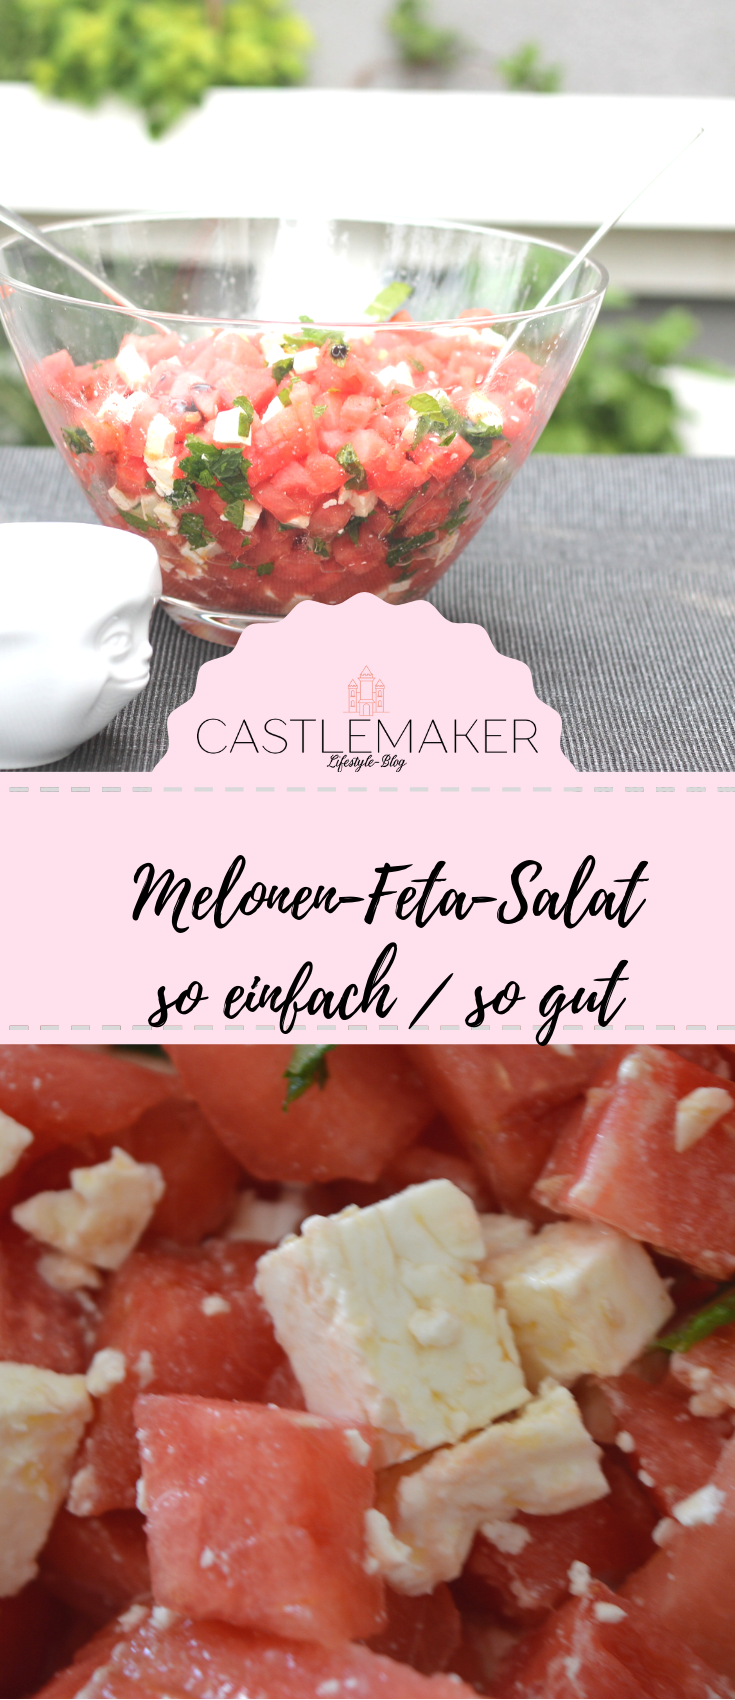 Photo of Melon and feta salad with mint – the refreshing party salad as a summer hit «CASTLEMAKER Lifestyle Blog